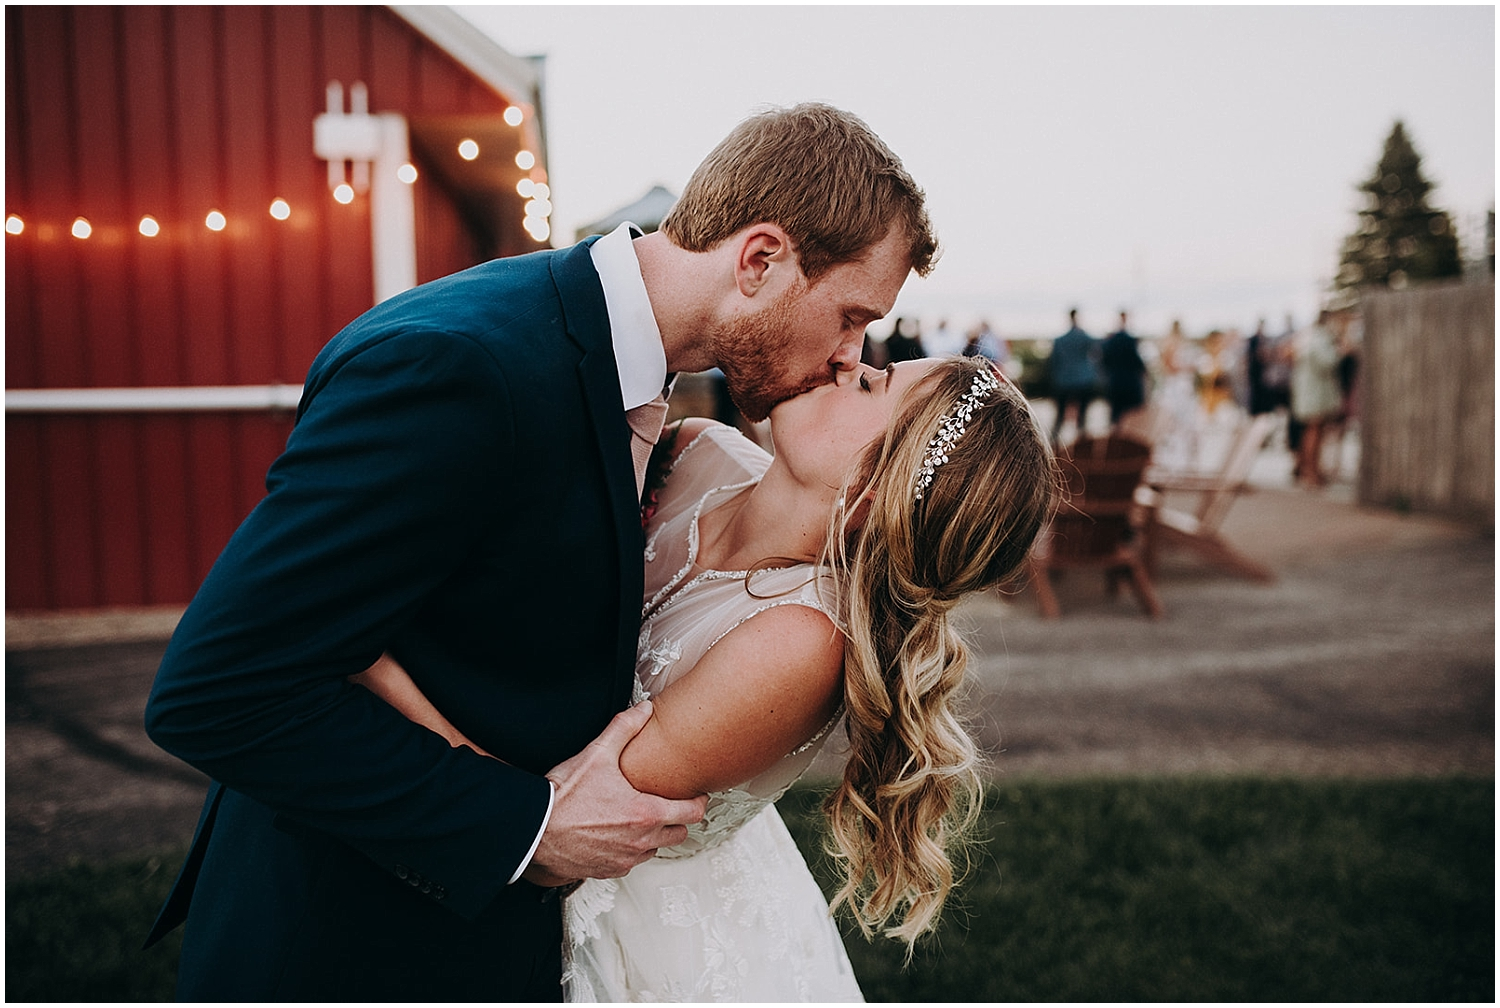 the bride and groom kiss at their MN wedding